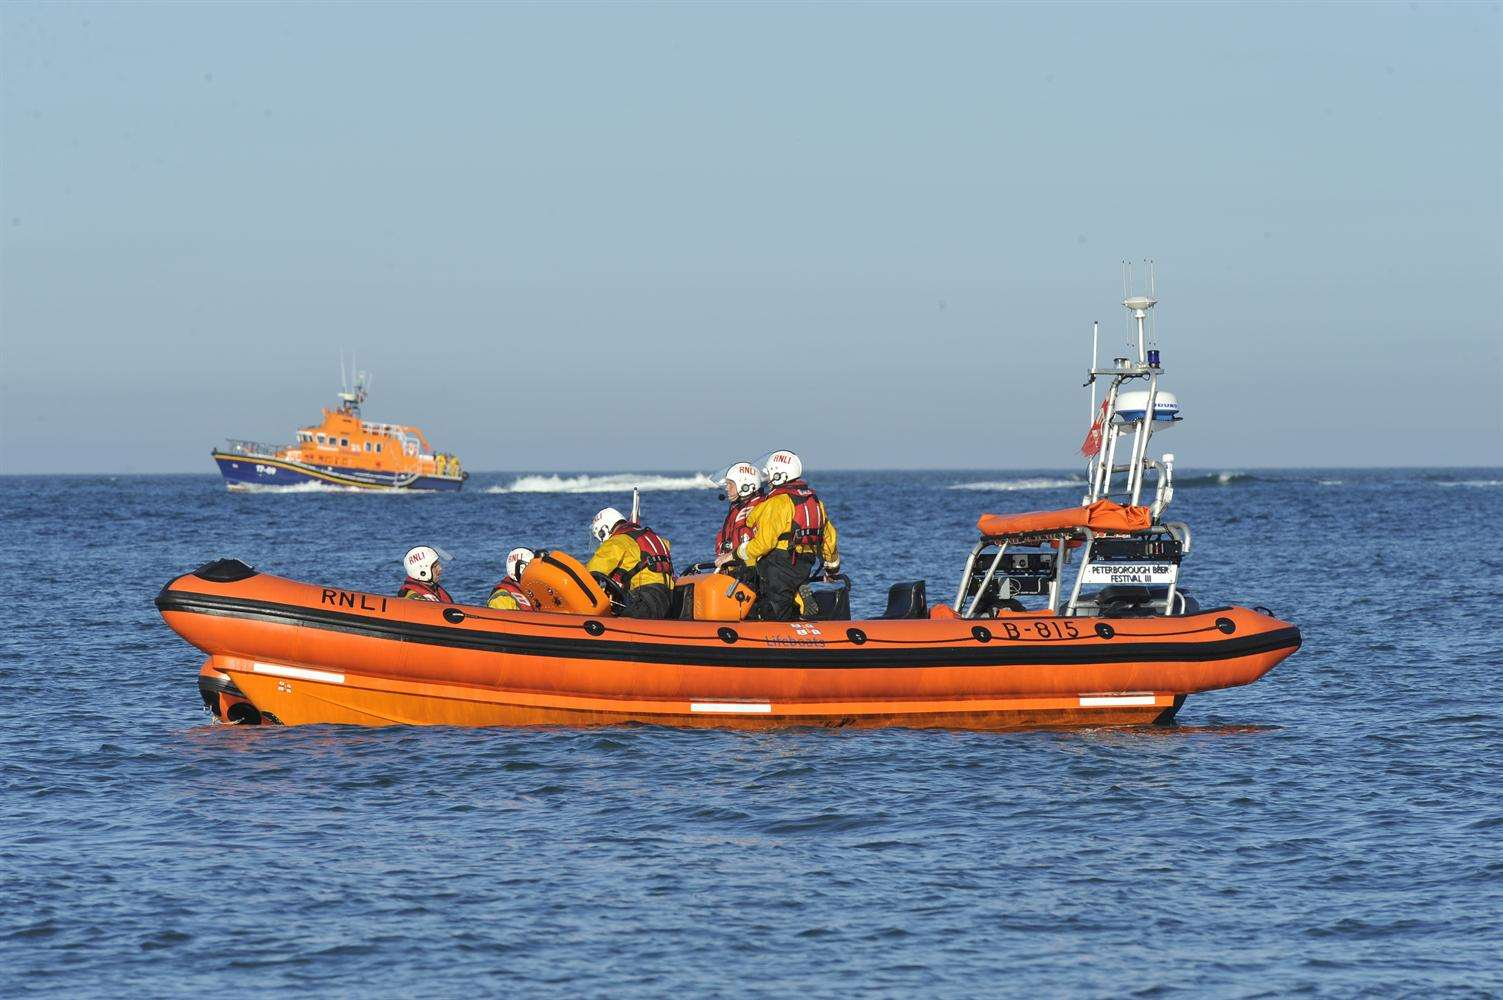 The RNLI and HM Coastguard will give a sea rescue demonstration at the Party on the Prom